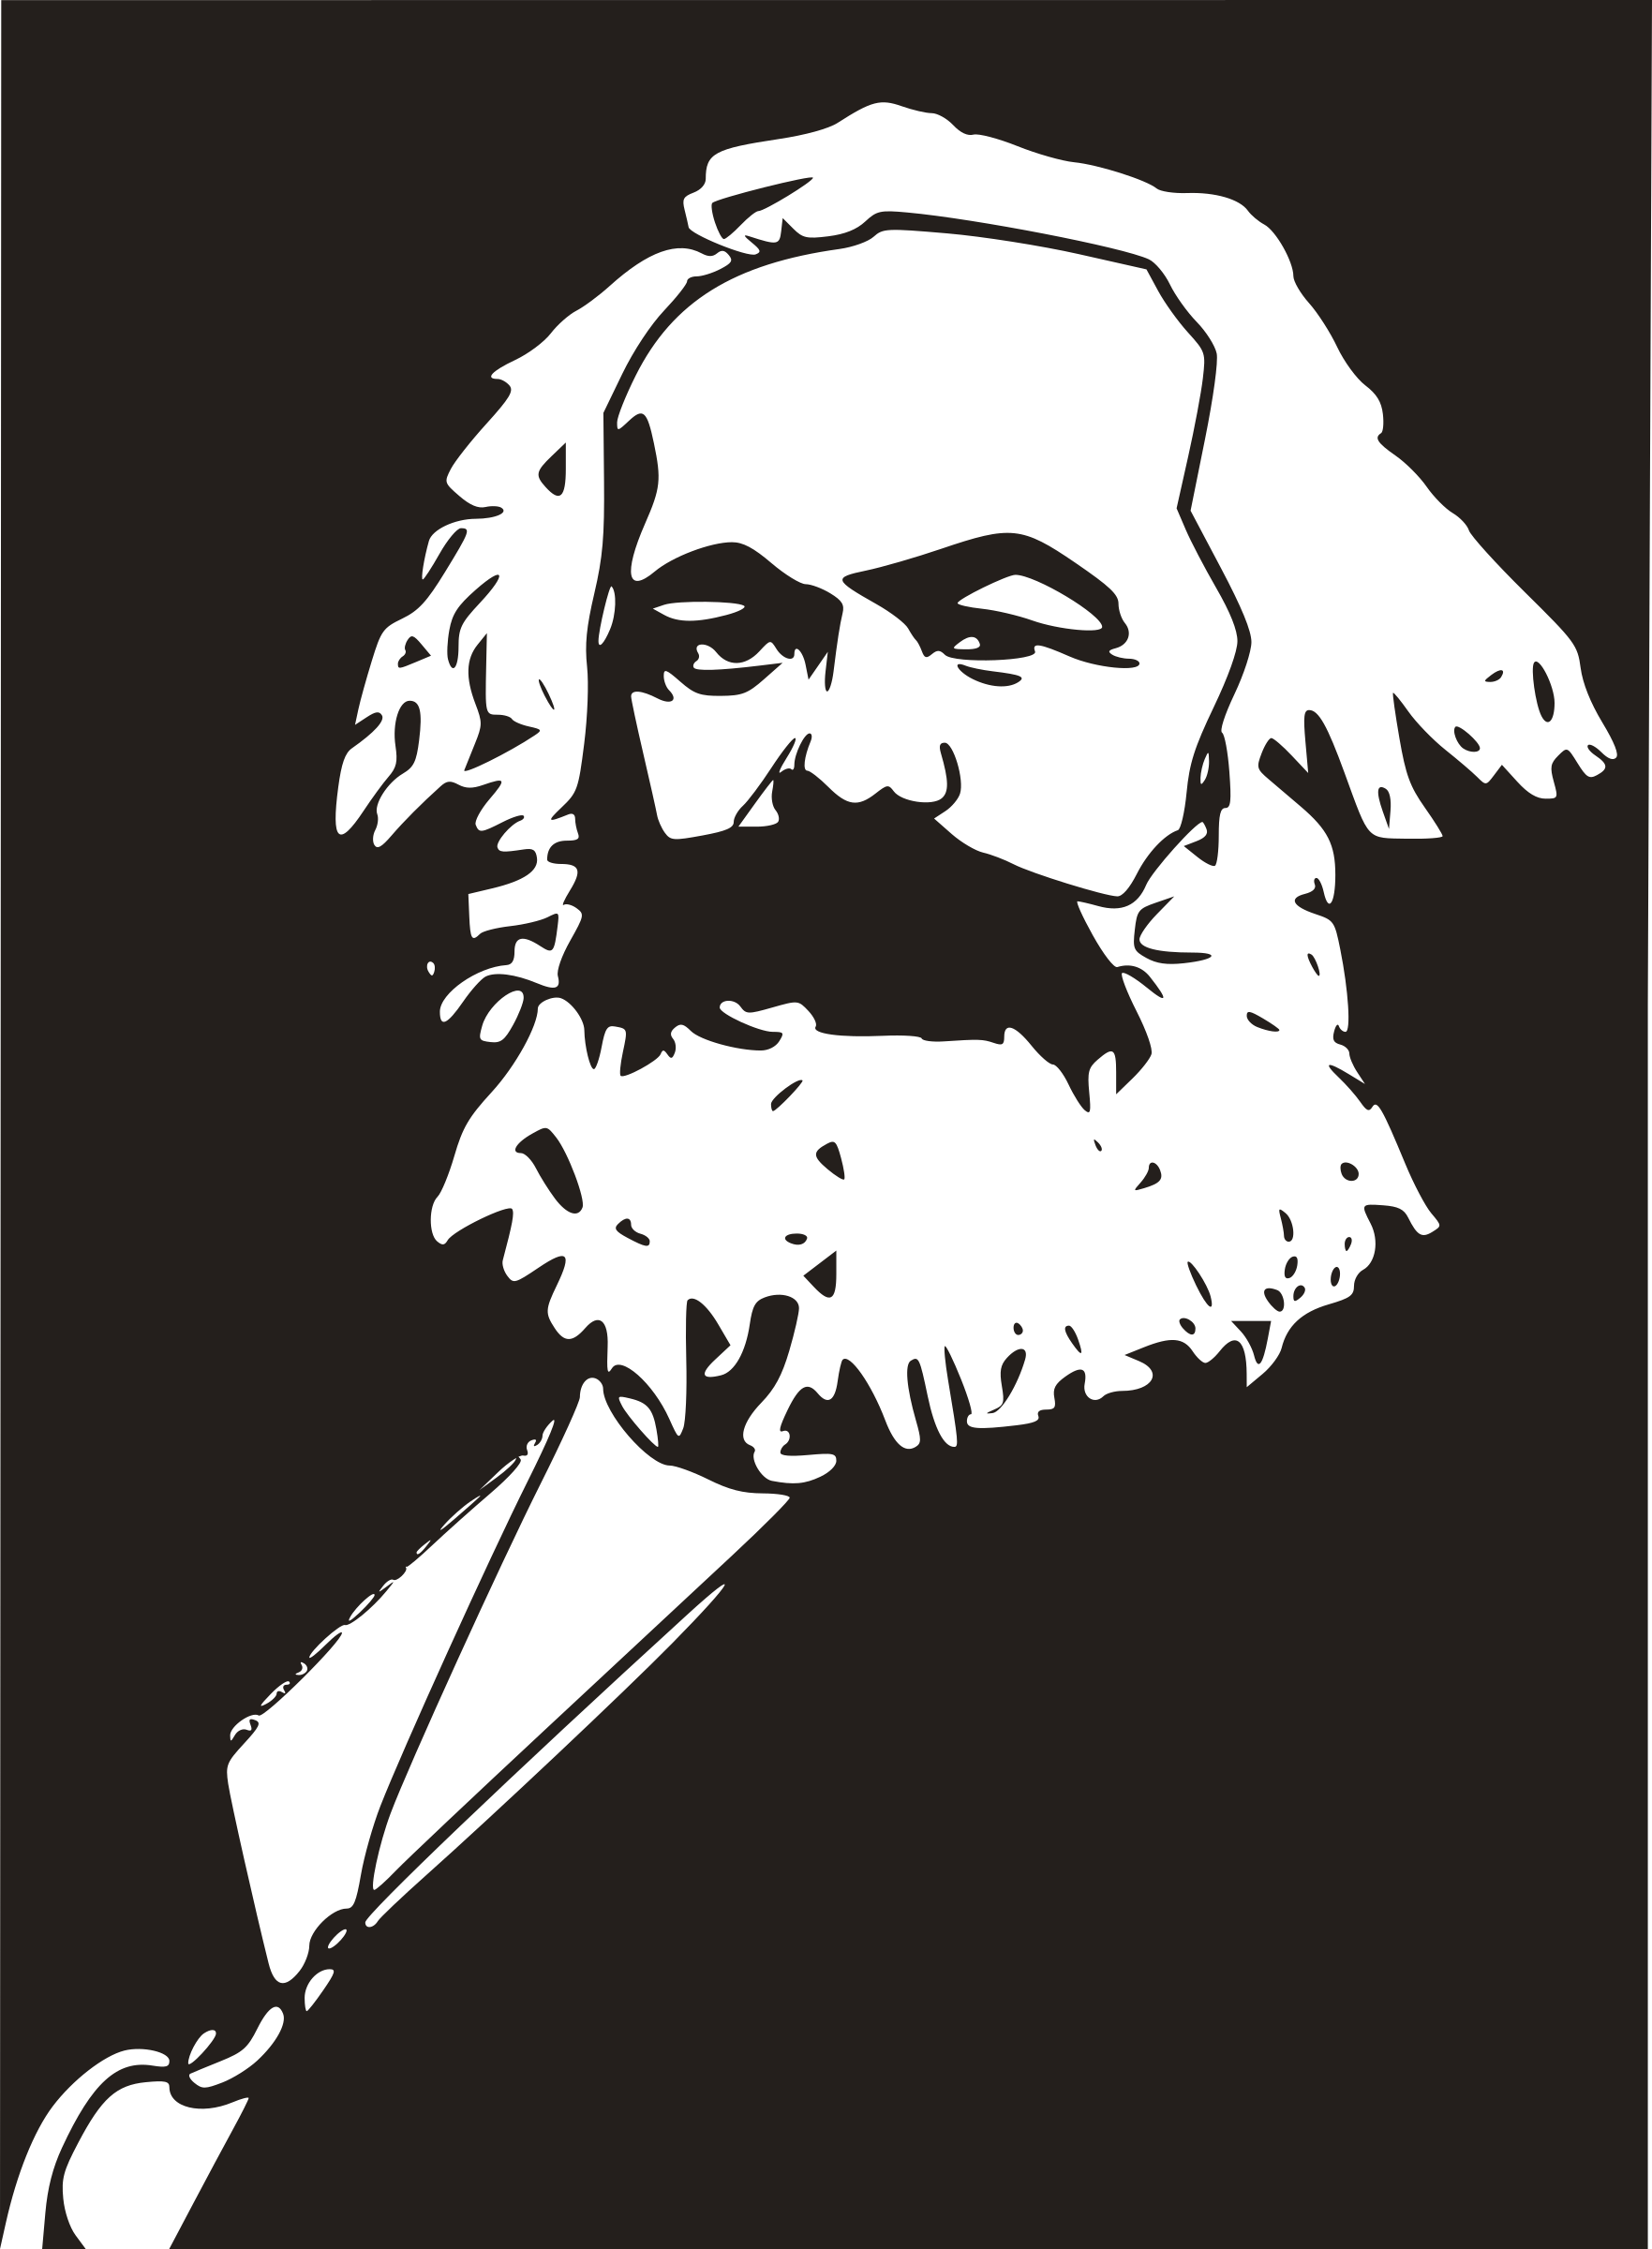 svg free download Karl marx big image. Beard clipart digital